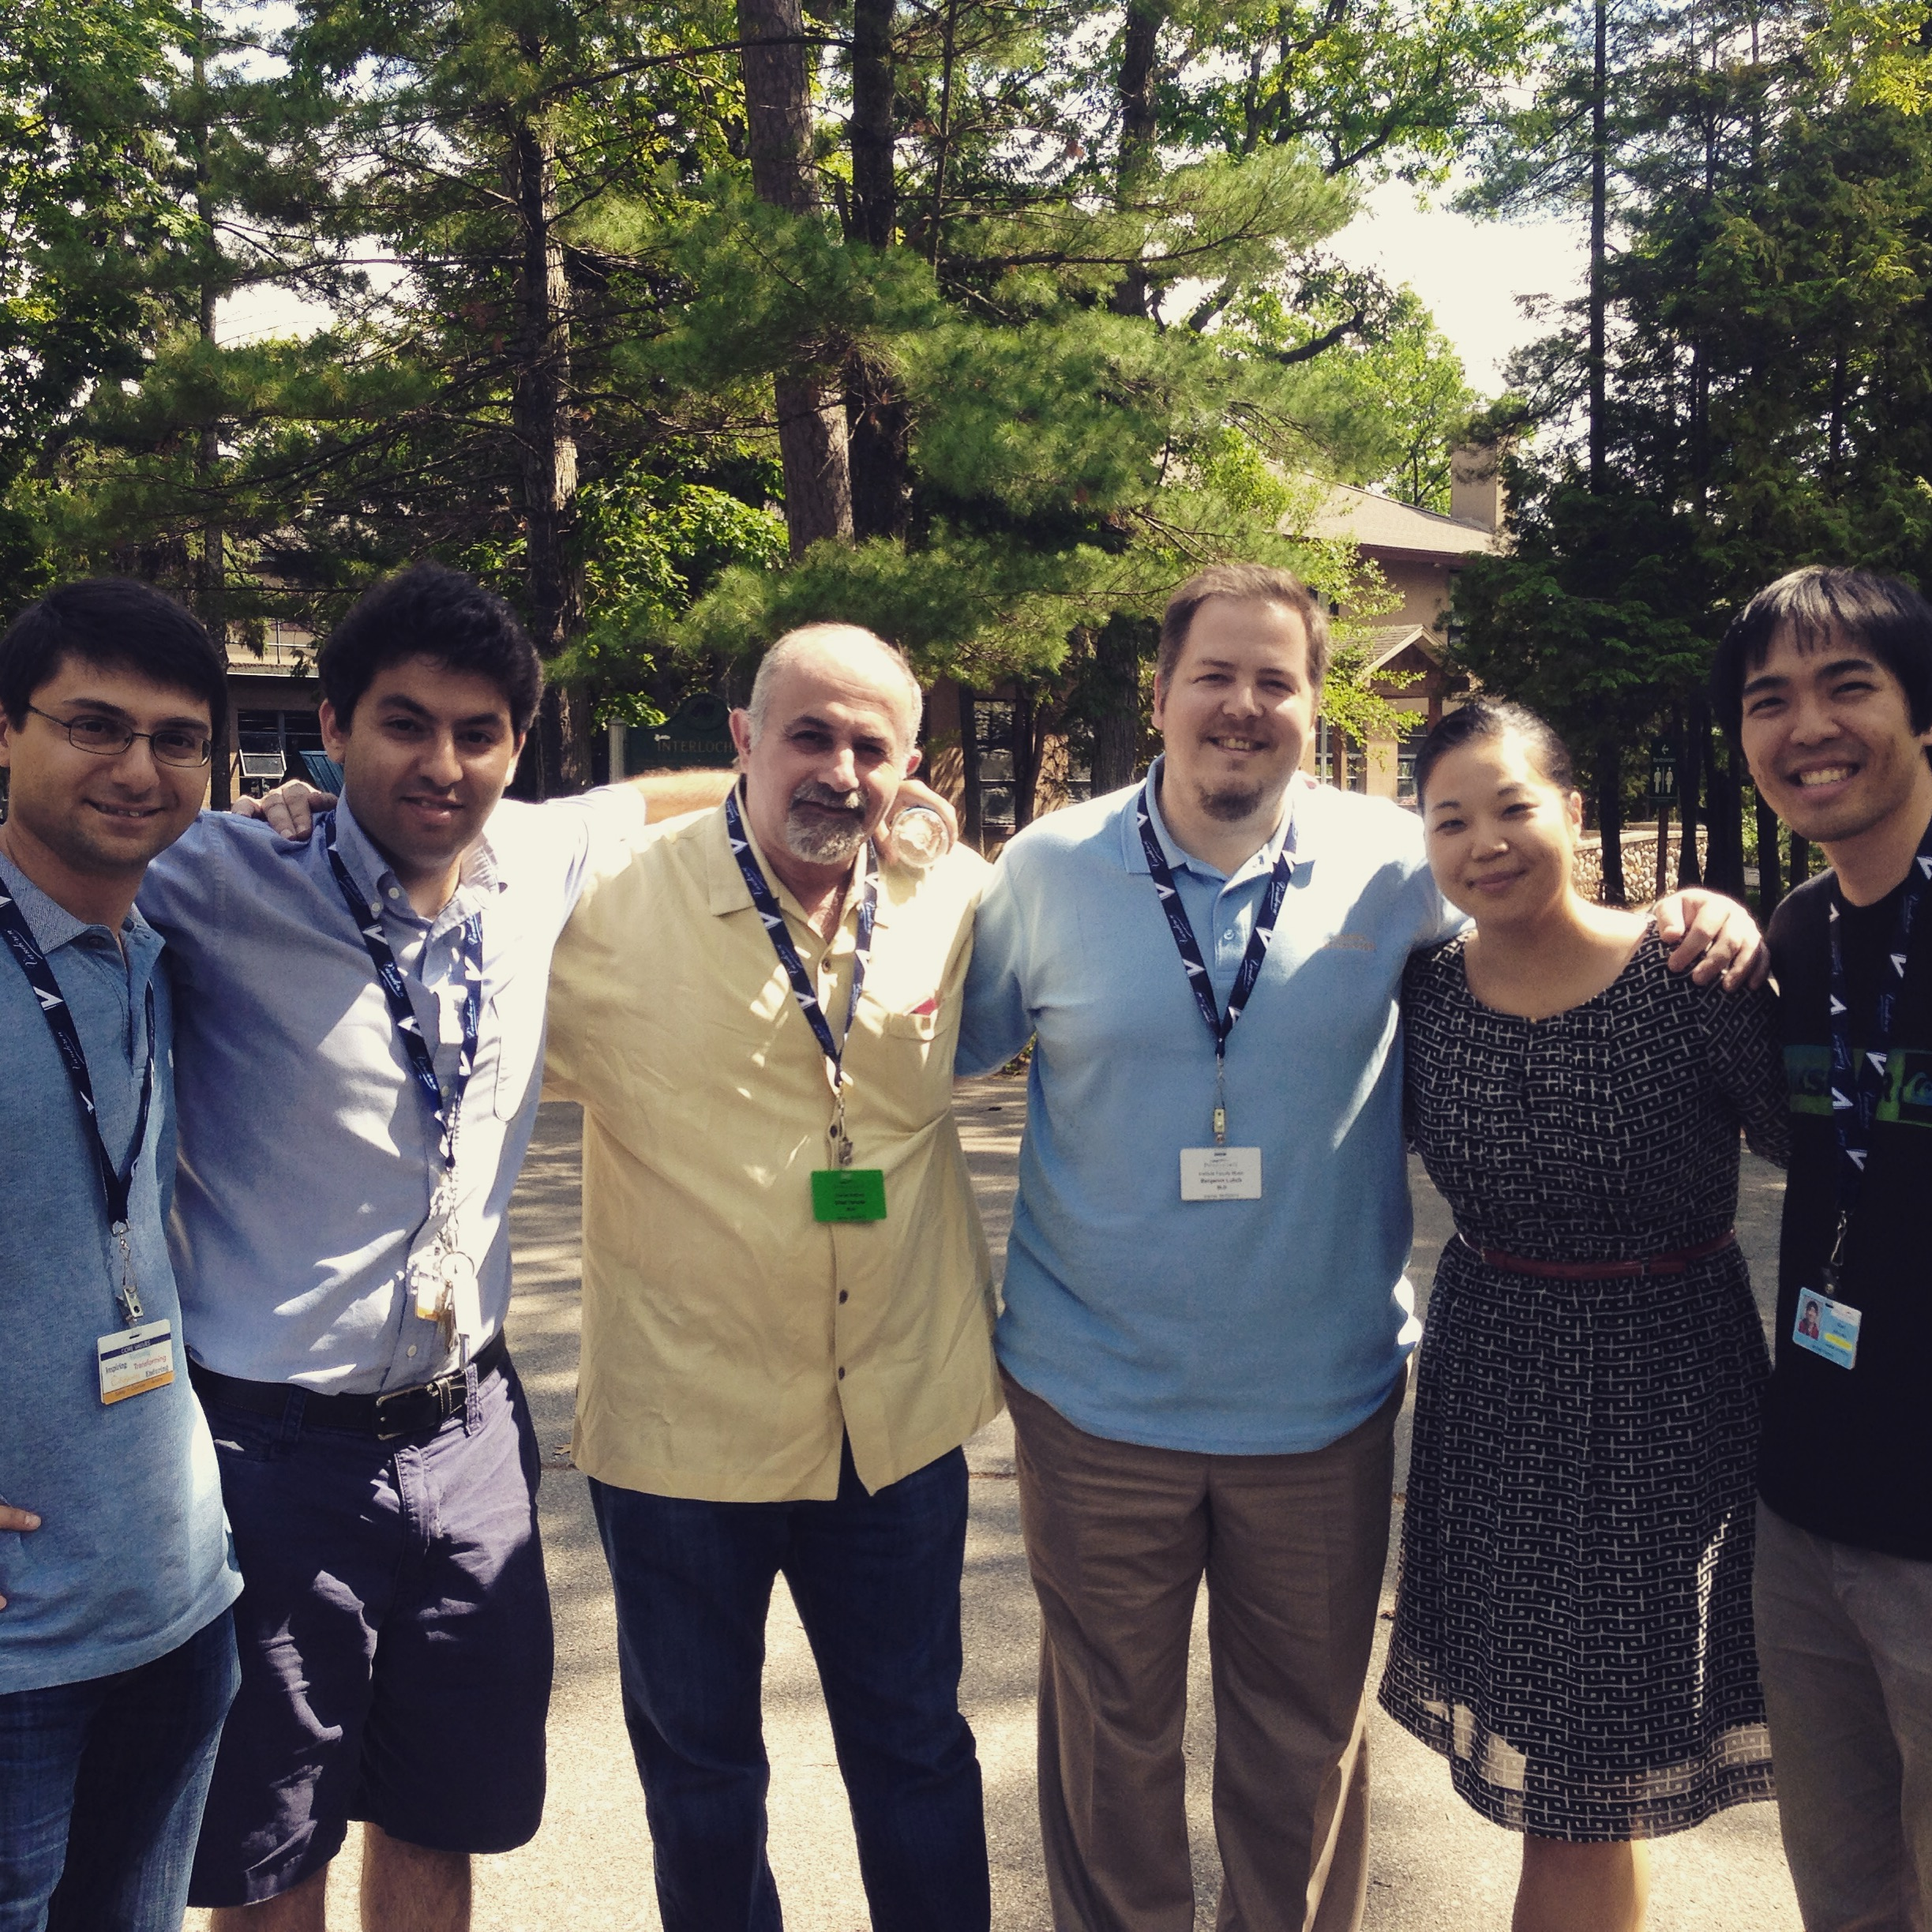 Interlochen Clarinet Week with All-Star Clarinetists